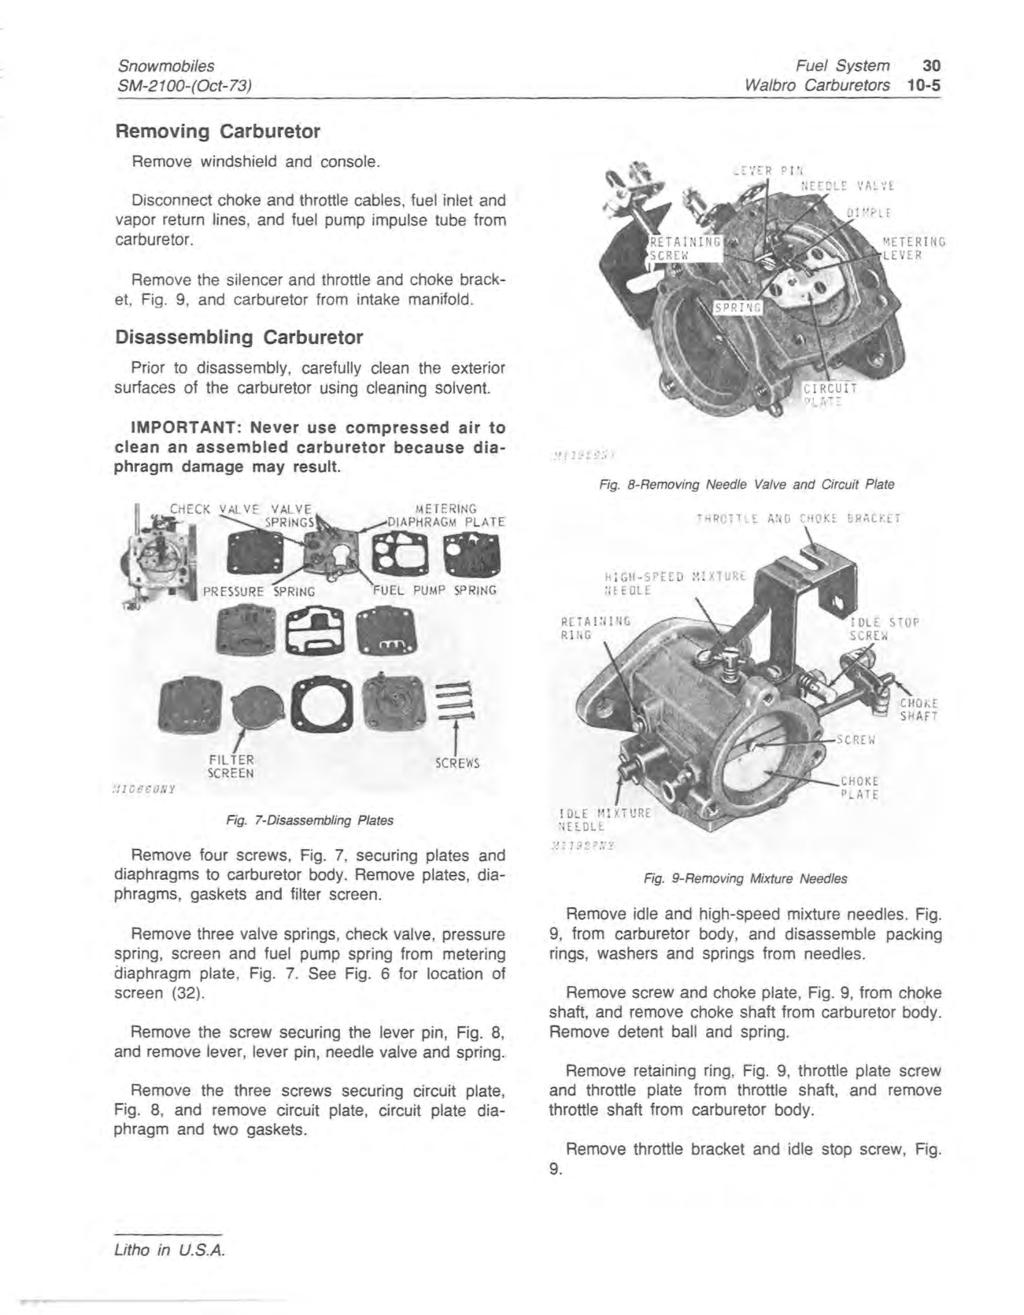 JOHN DEERE SNOWMOBILES (Serial No  2,551- ) Service Manual SM-2100